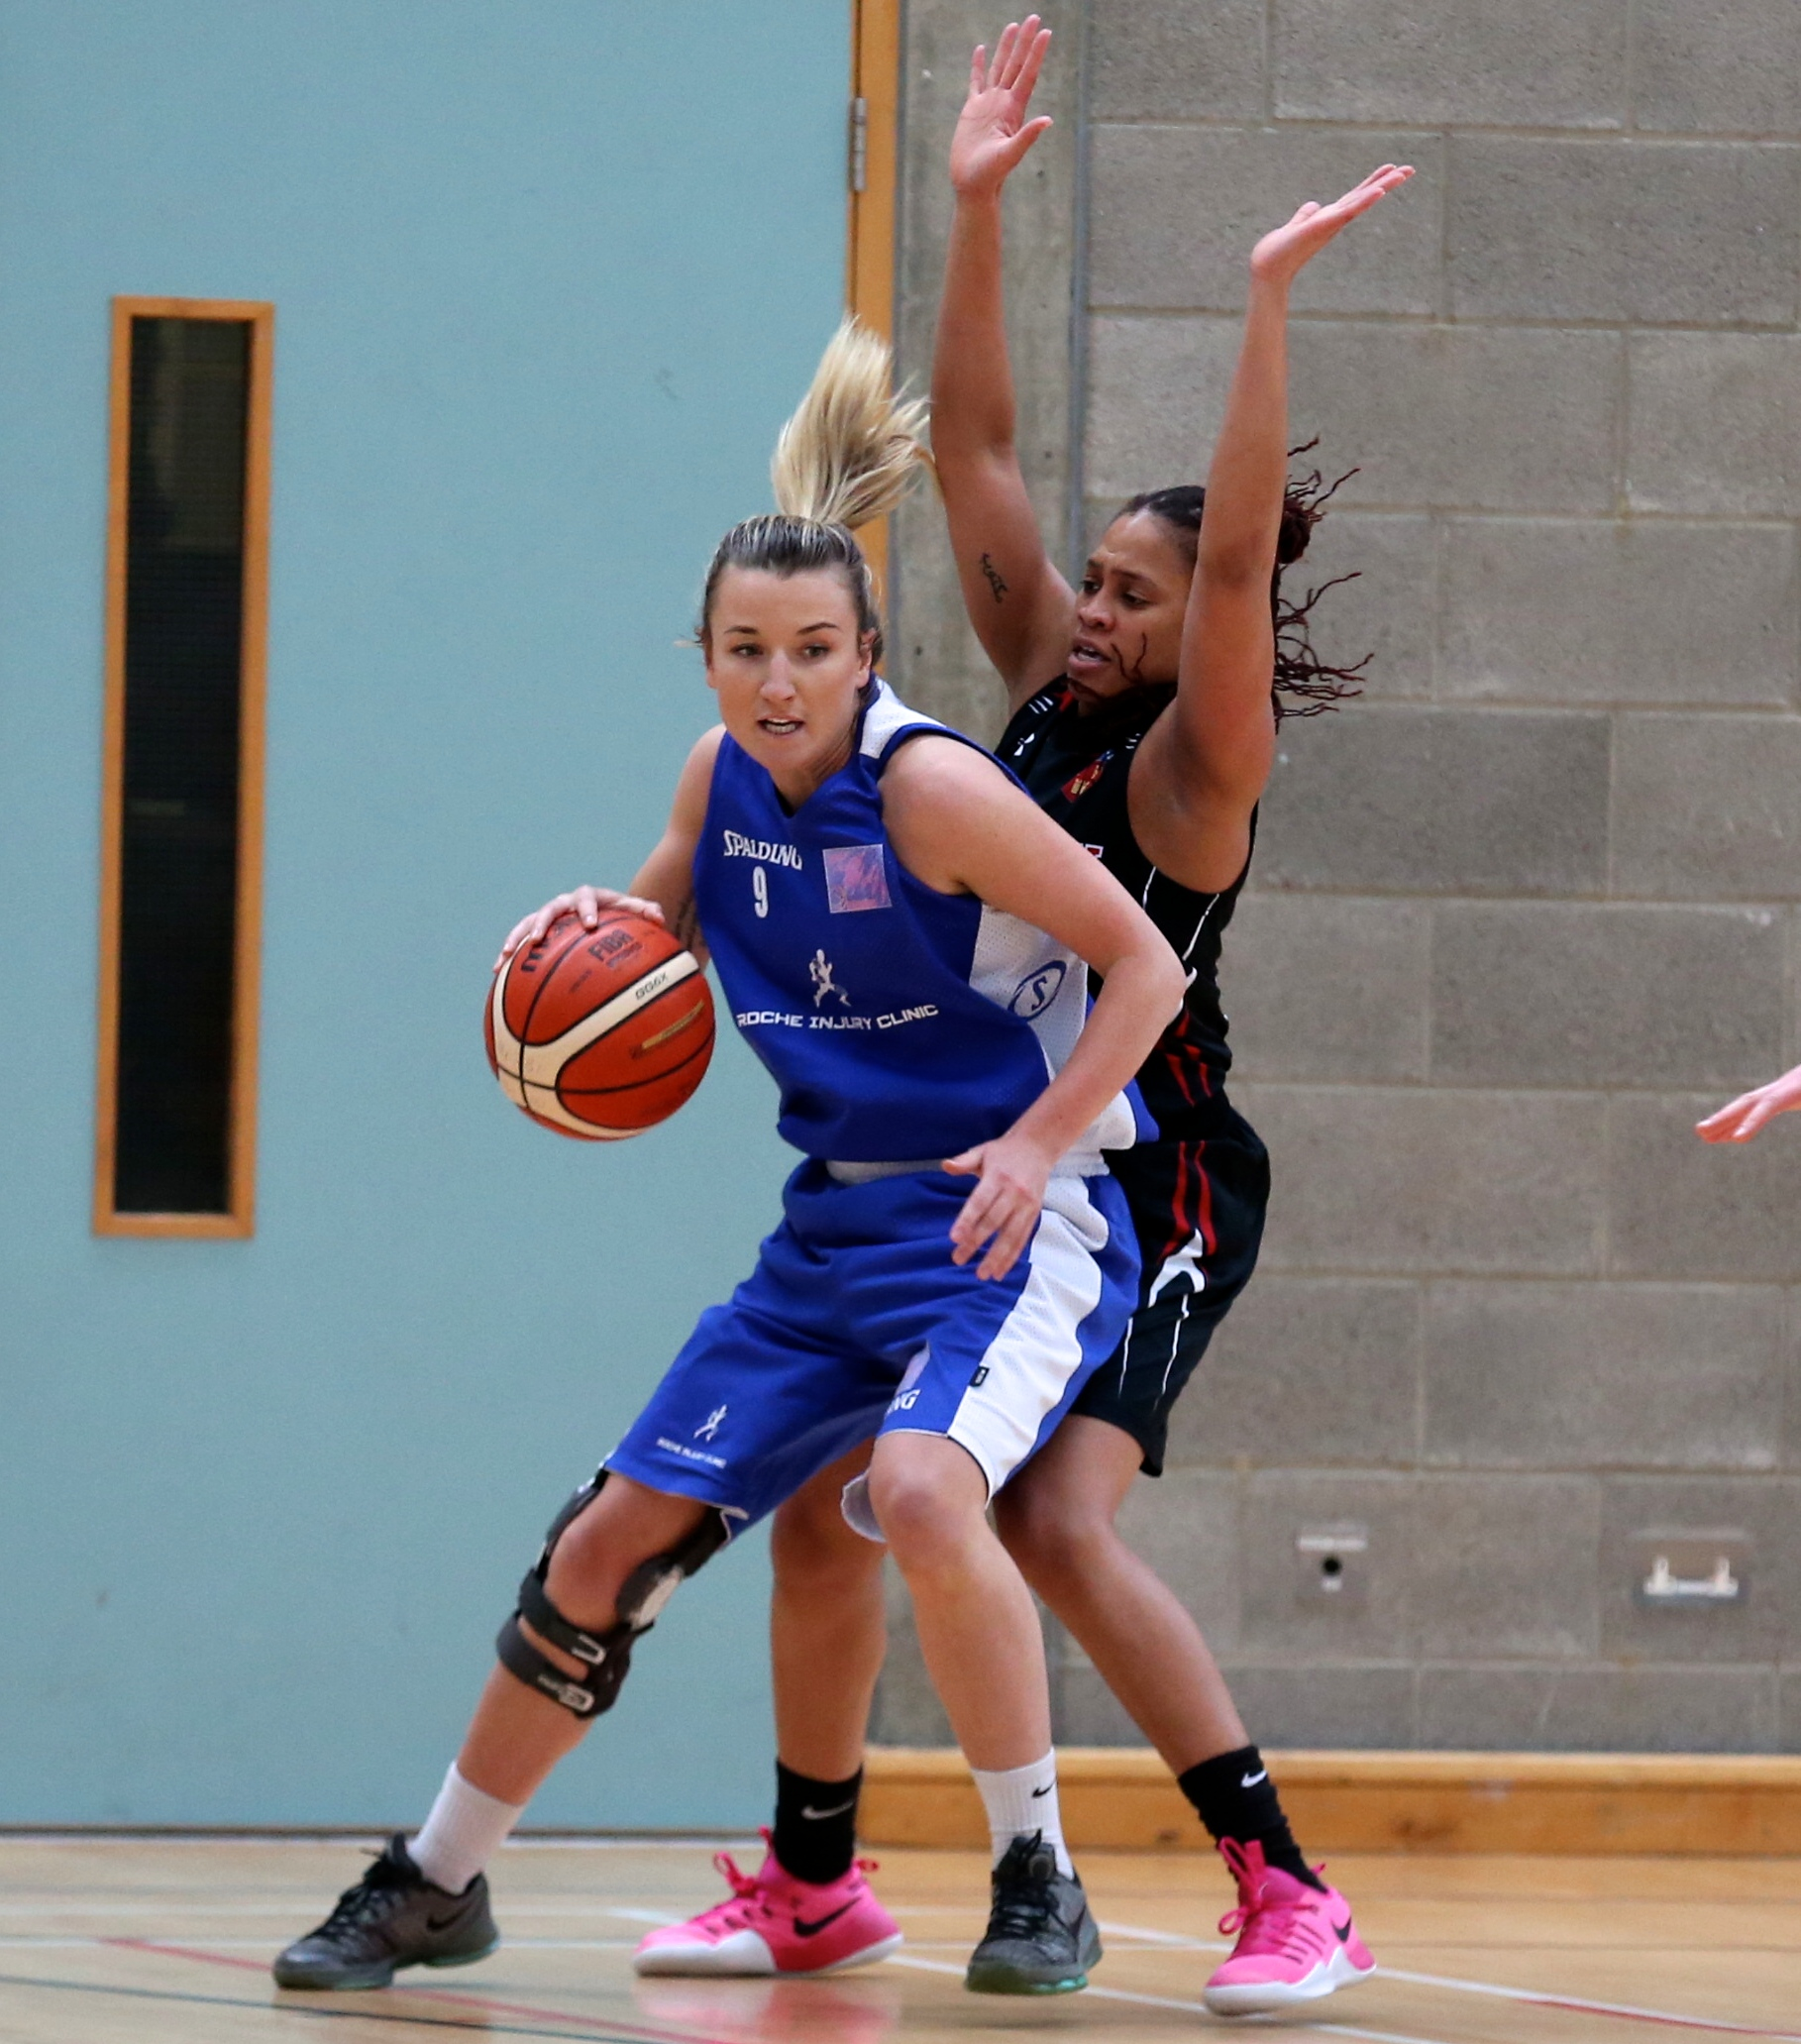 Marble City Hawks in action against IT Carlow in the Women's National Final at Letterkenny. Photo: Basketball Ireland